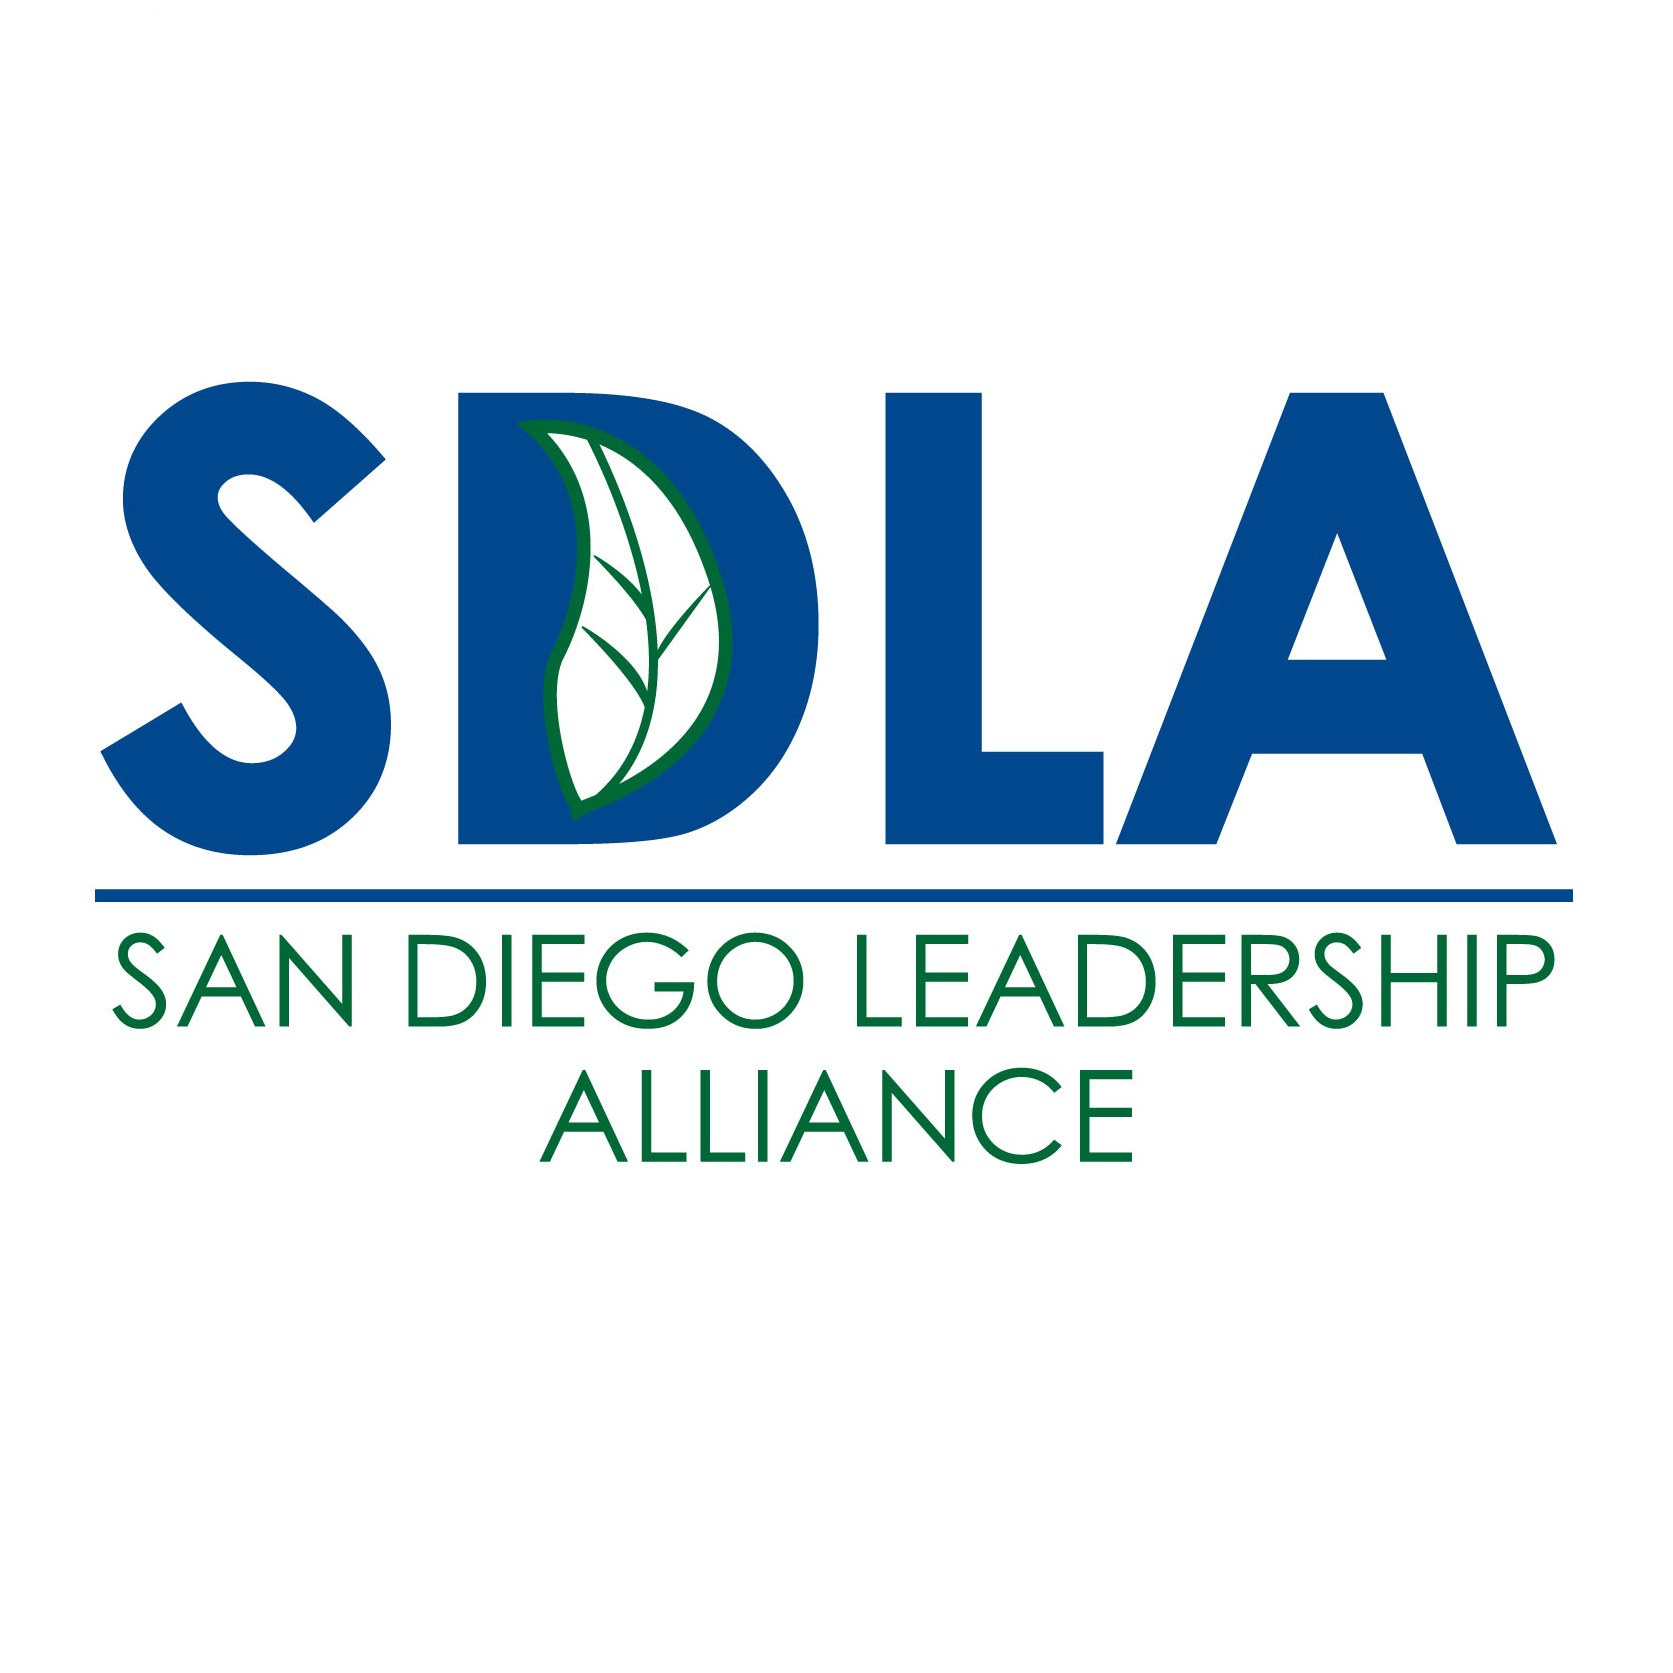 San Diego Leadership Alliance